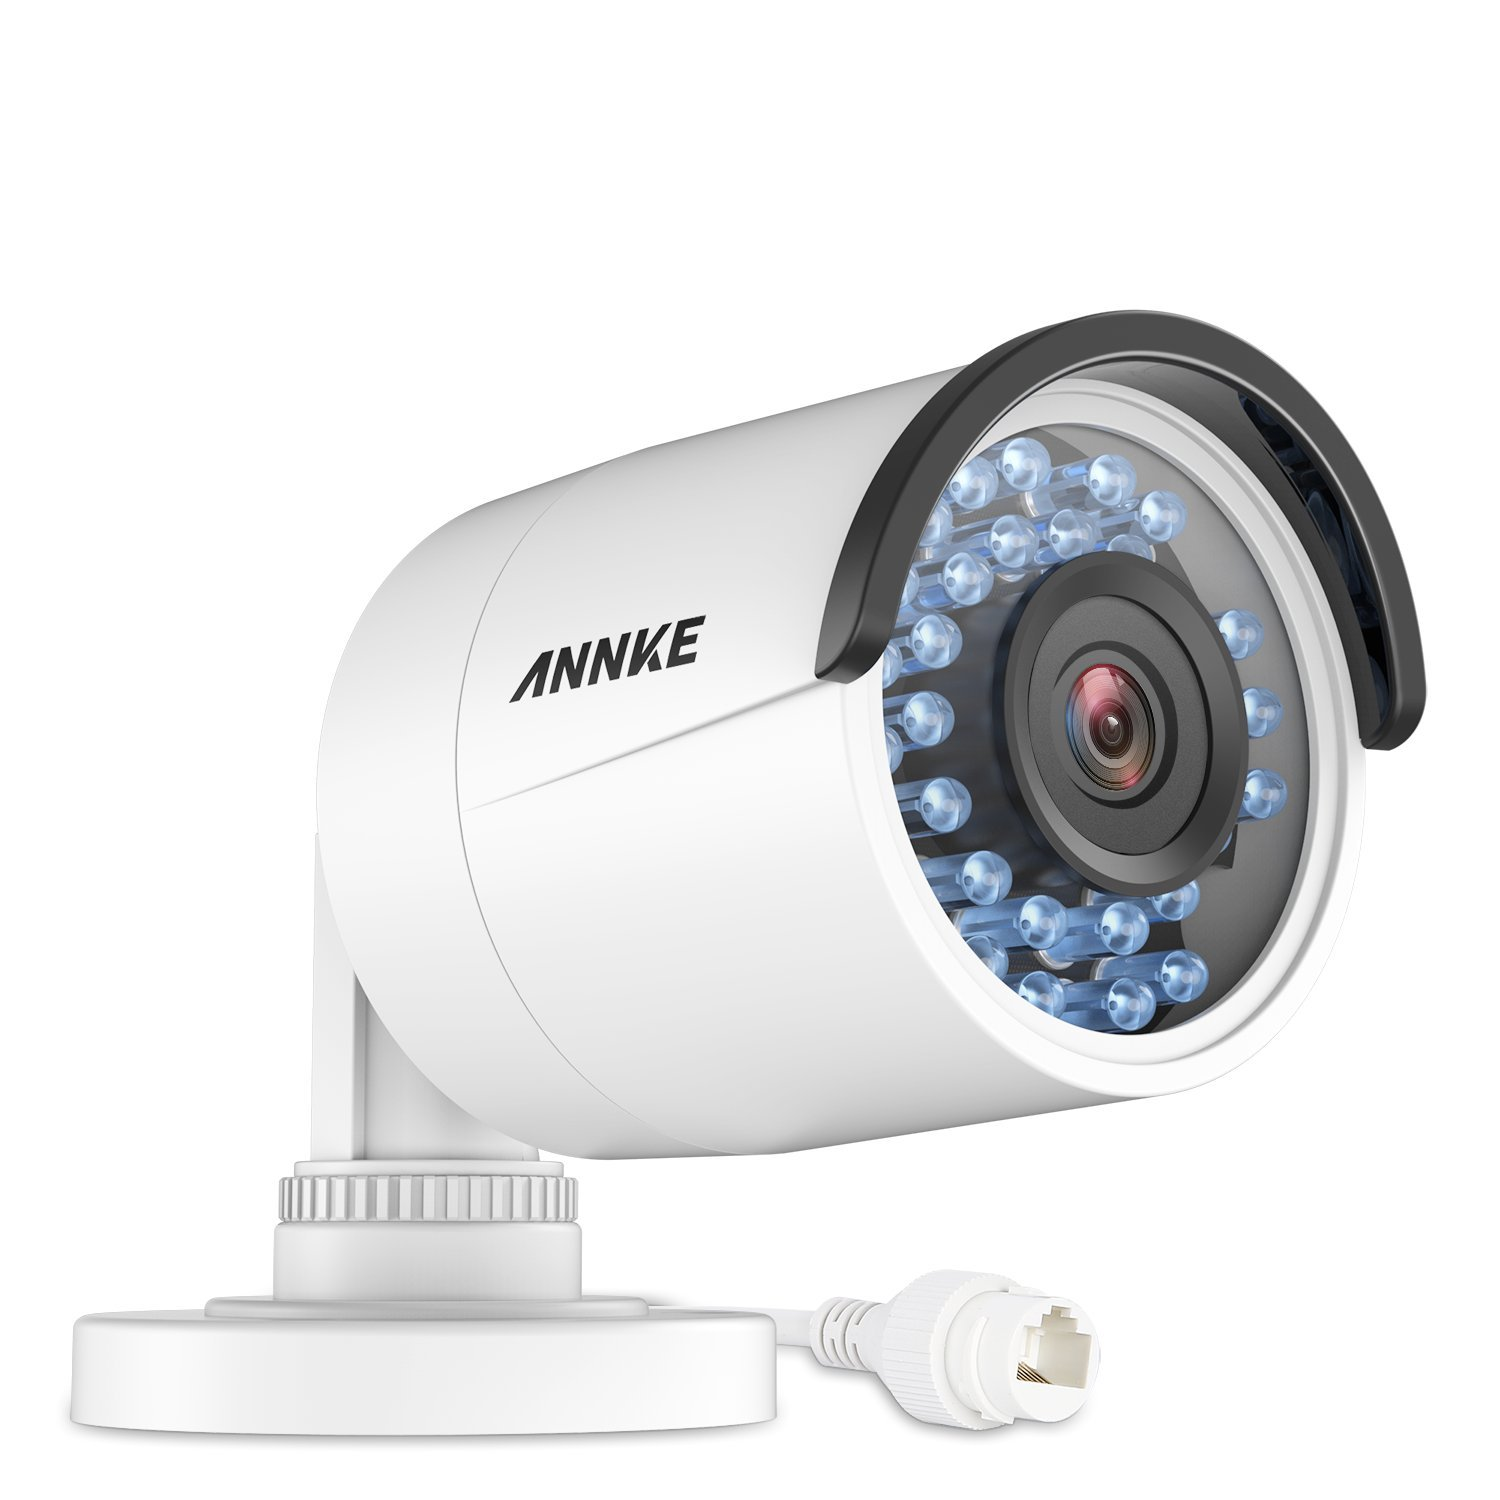 ANNKE 1.3MP 960P Network POE IP Camera, IP67 Weatherproof CCTV Camera